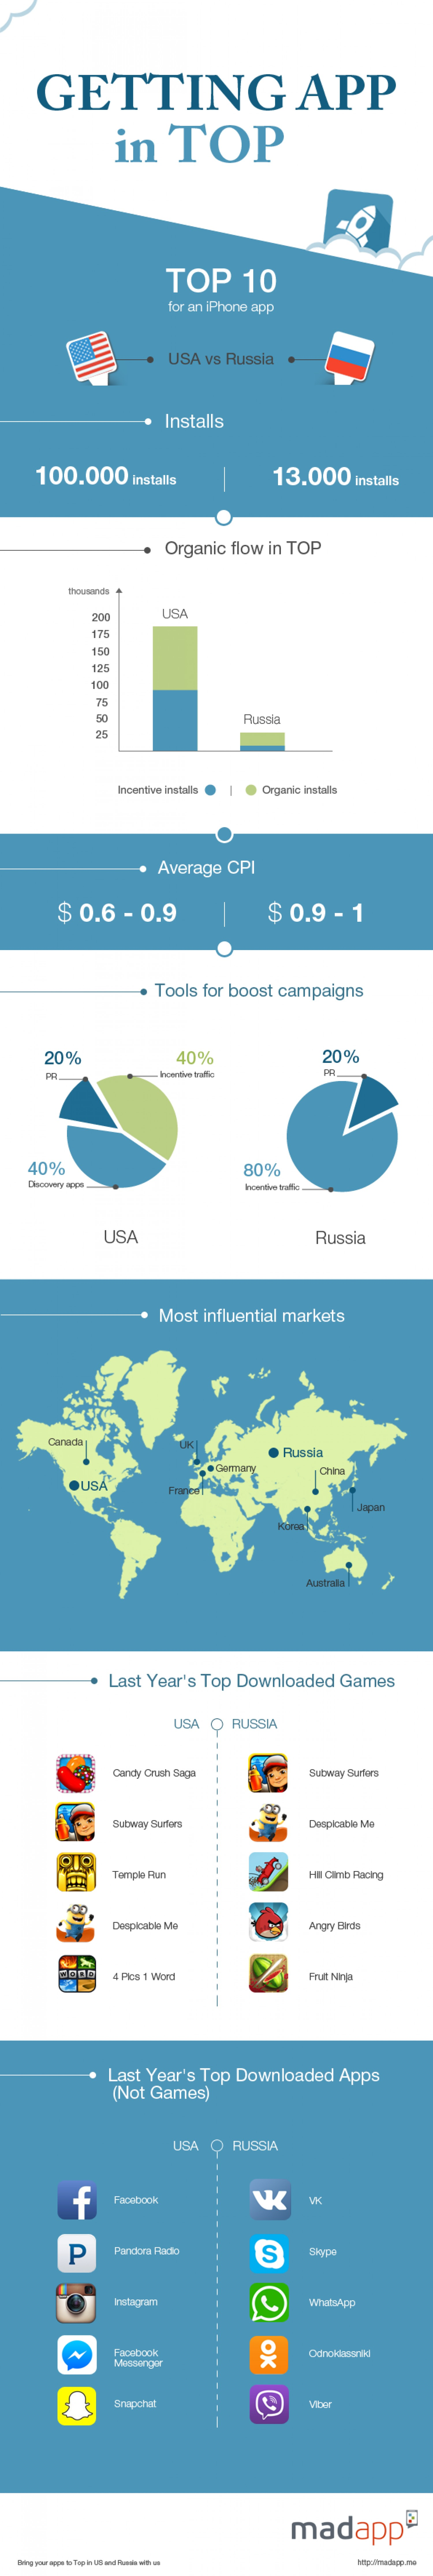 getting-app-in-top-in-usa-and-russia-biggest-markets-comparison_5469c8df7ea56_w1500